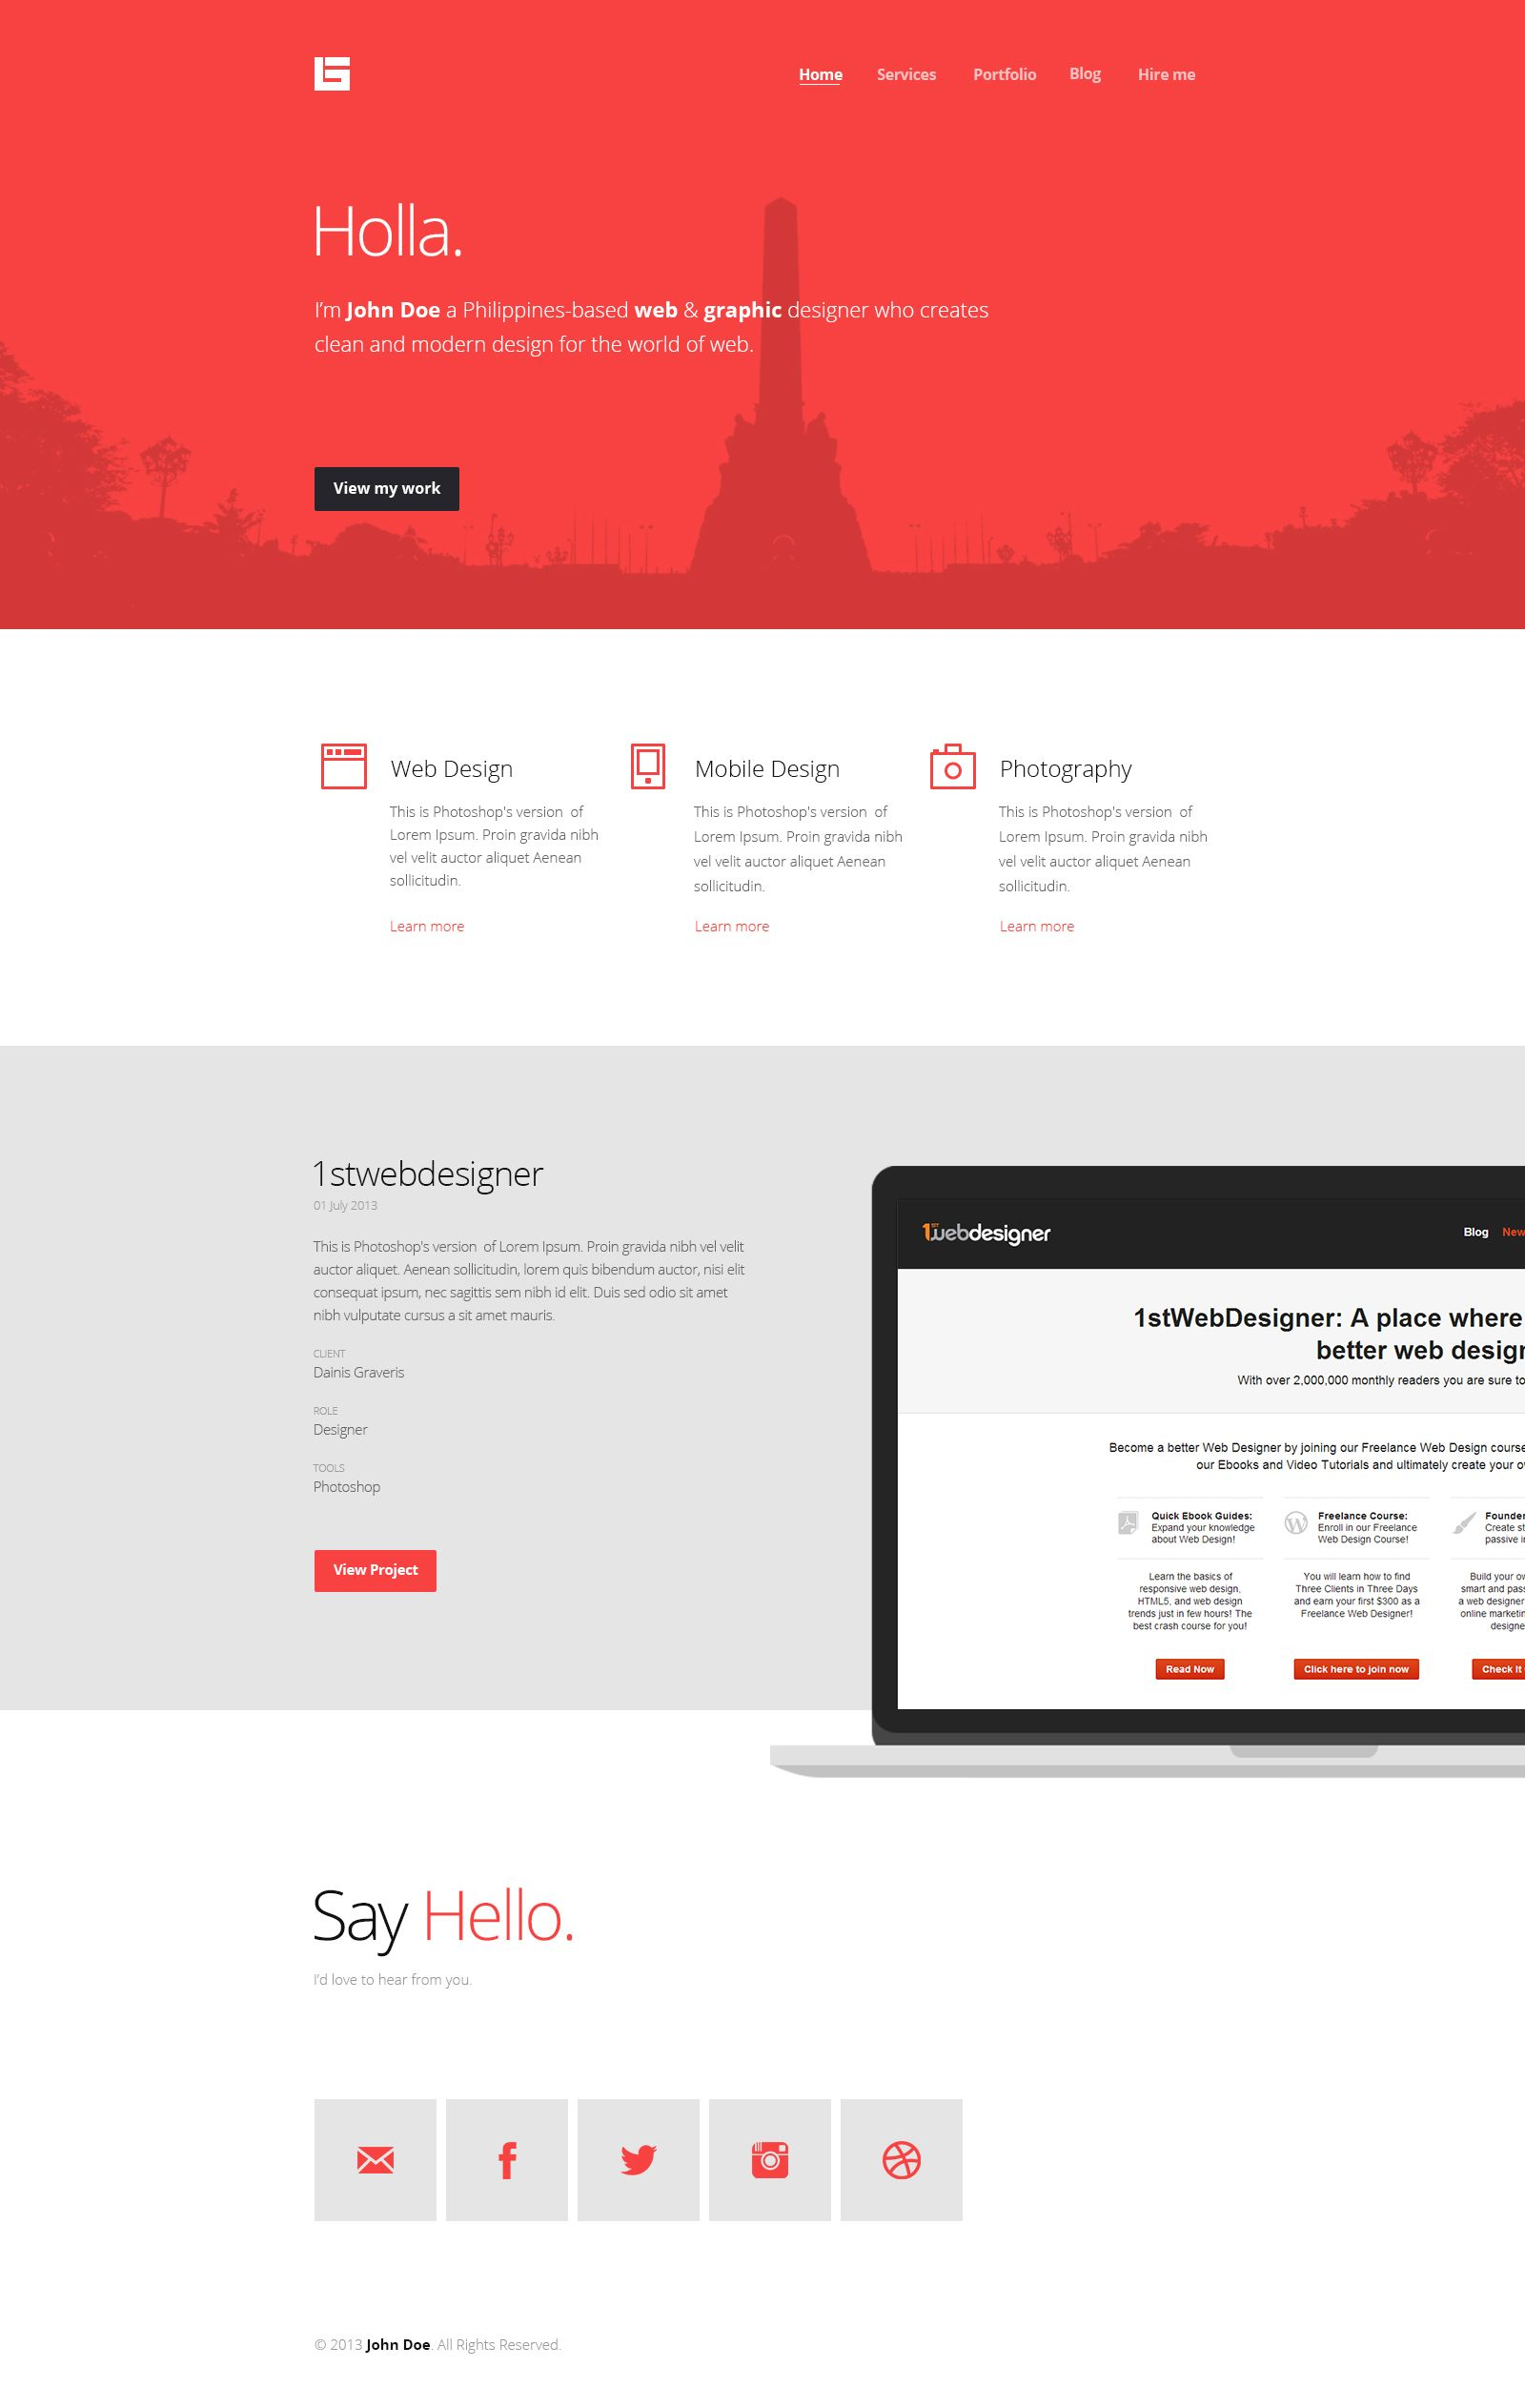 flat-web-design-portfolio-preview2.jpg (1600×2526)